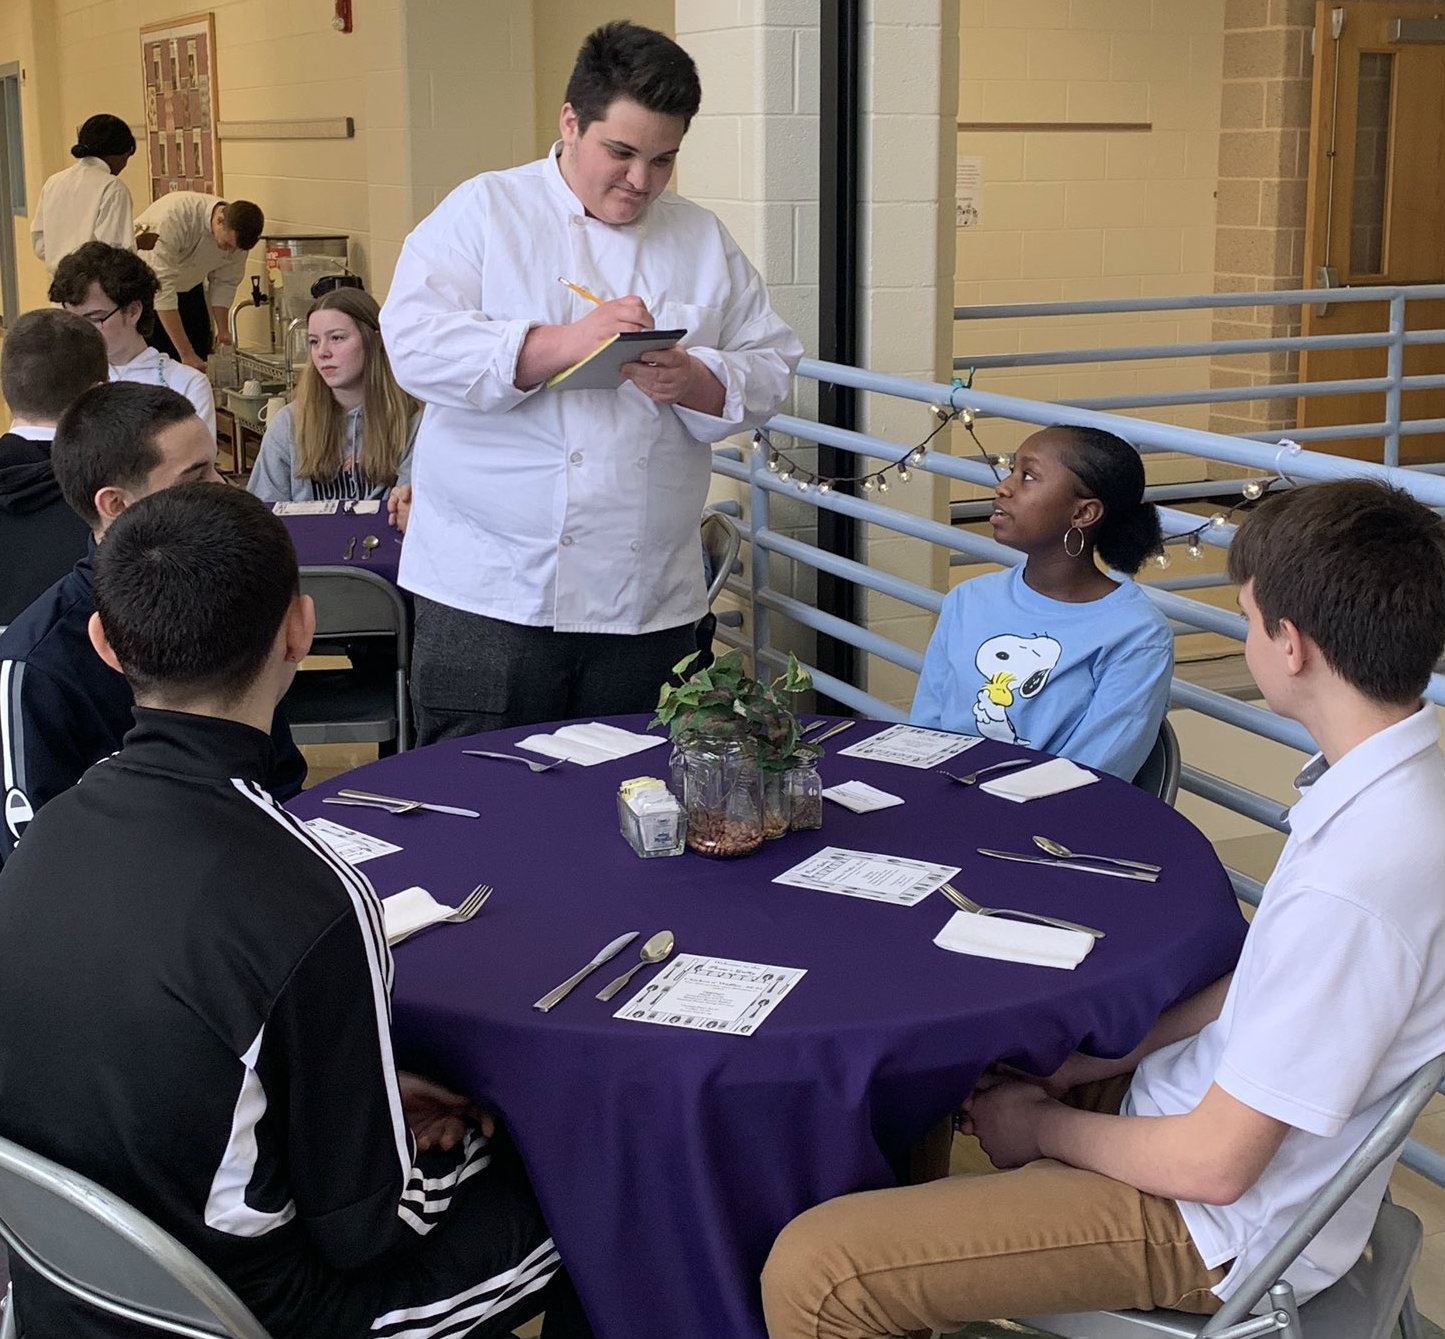 Culinary student takes food orders during Manners Meal.